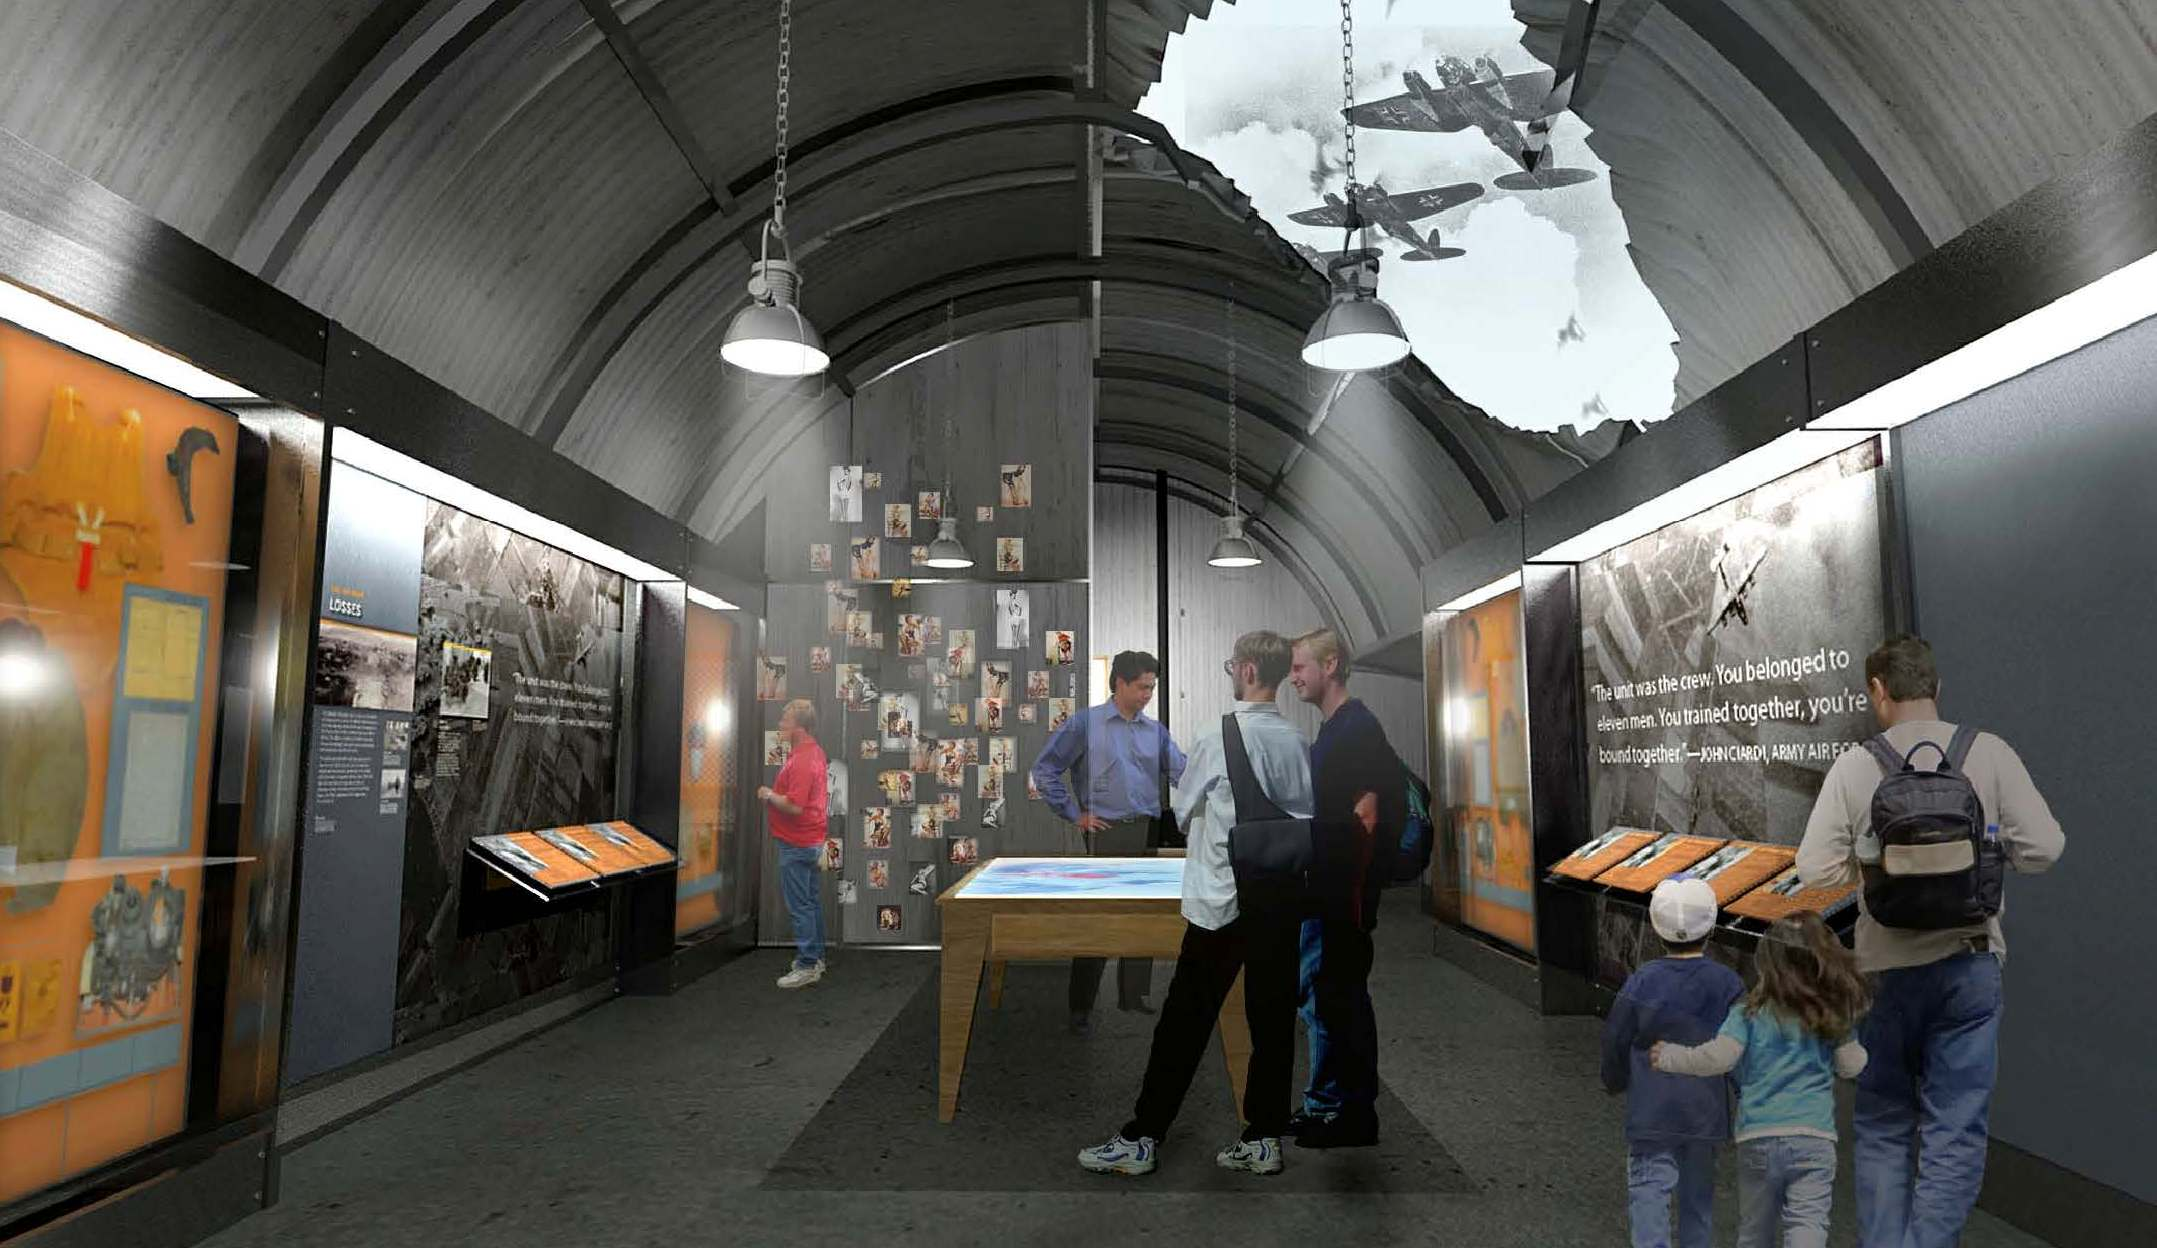 Rendering of the Air War gallery